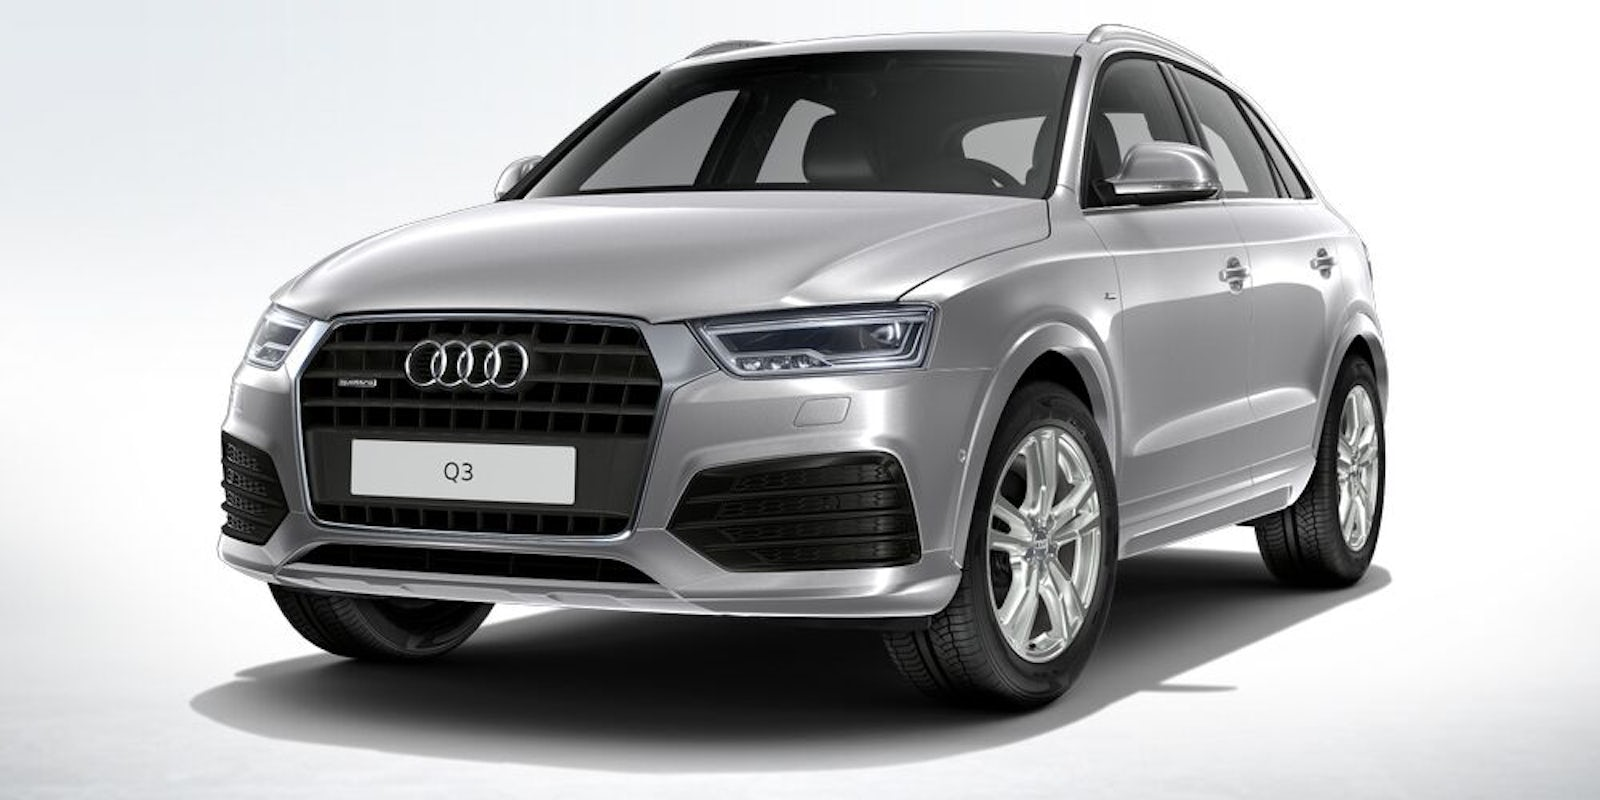 Audi Q Colours Guide And Prices Carwow - Audi car q3 price in india